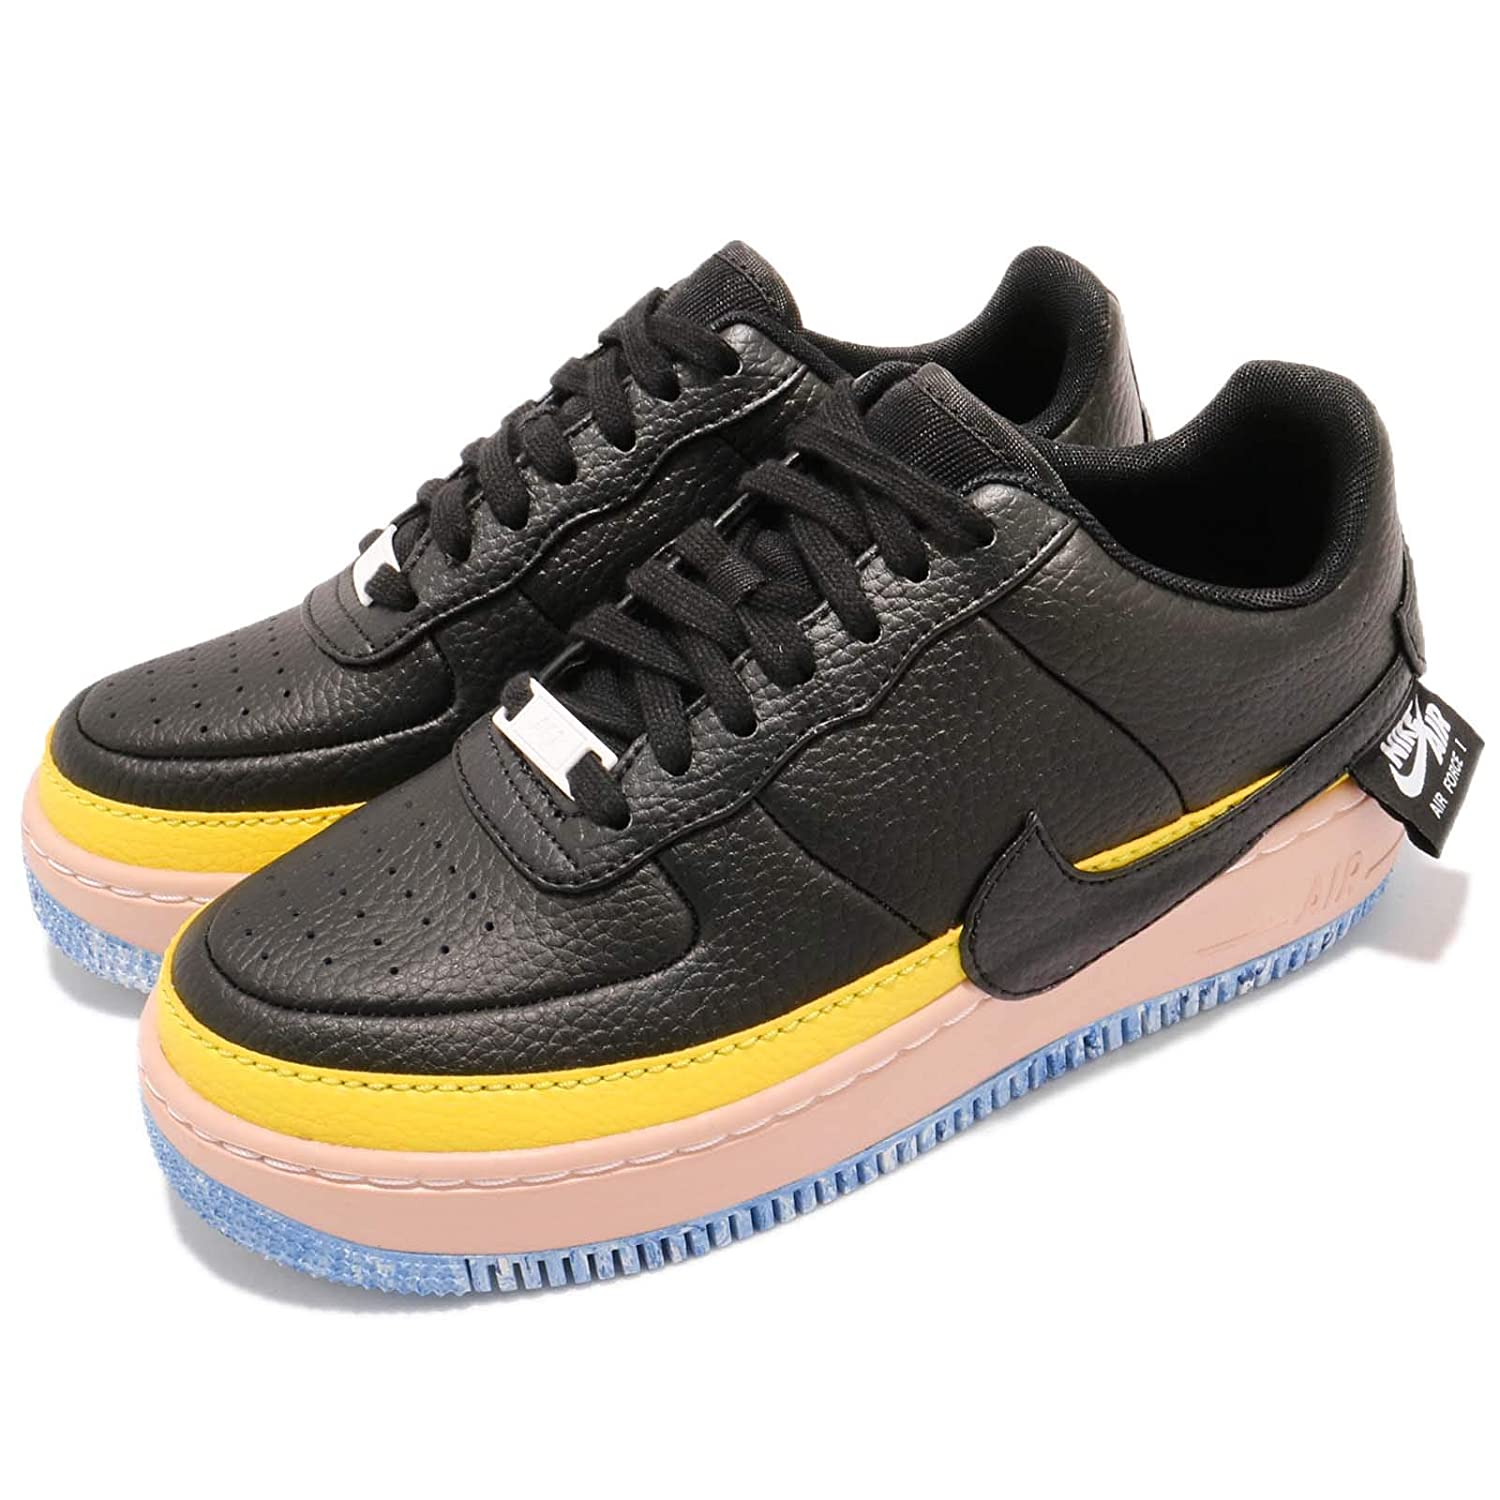 buy popular 59495 c21f9 Amazon.com   Nike Women s WMNS Air Force 1 Jester XX SE, Black Sonic Yellow    Fashion Sneakers